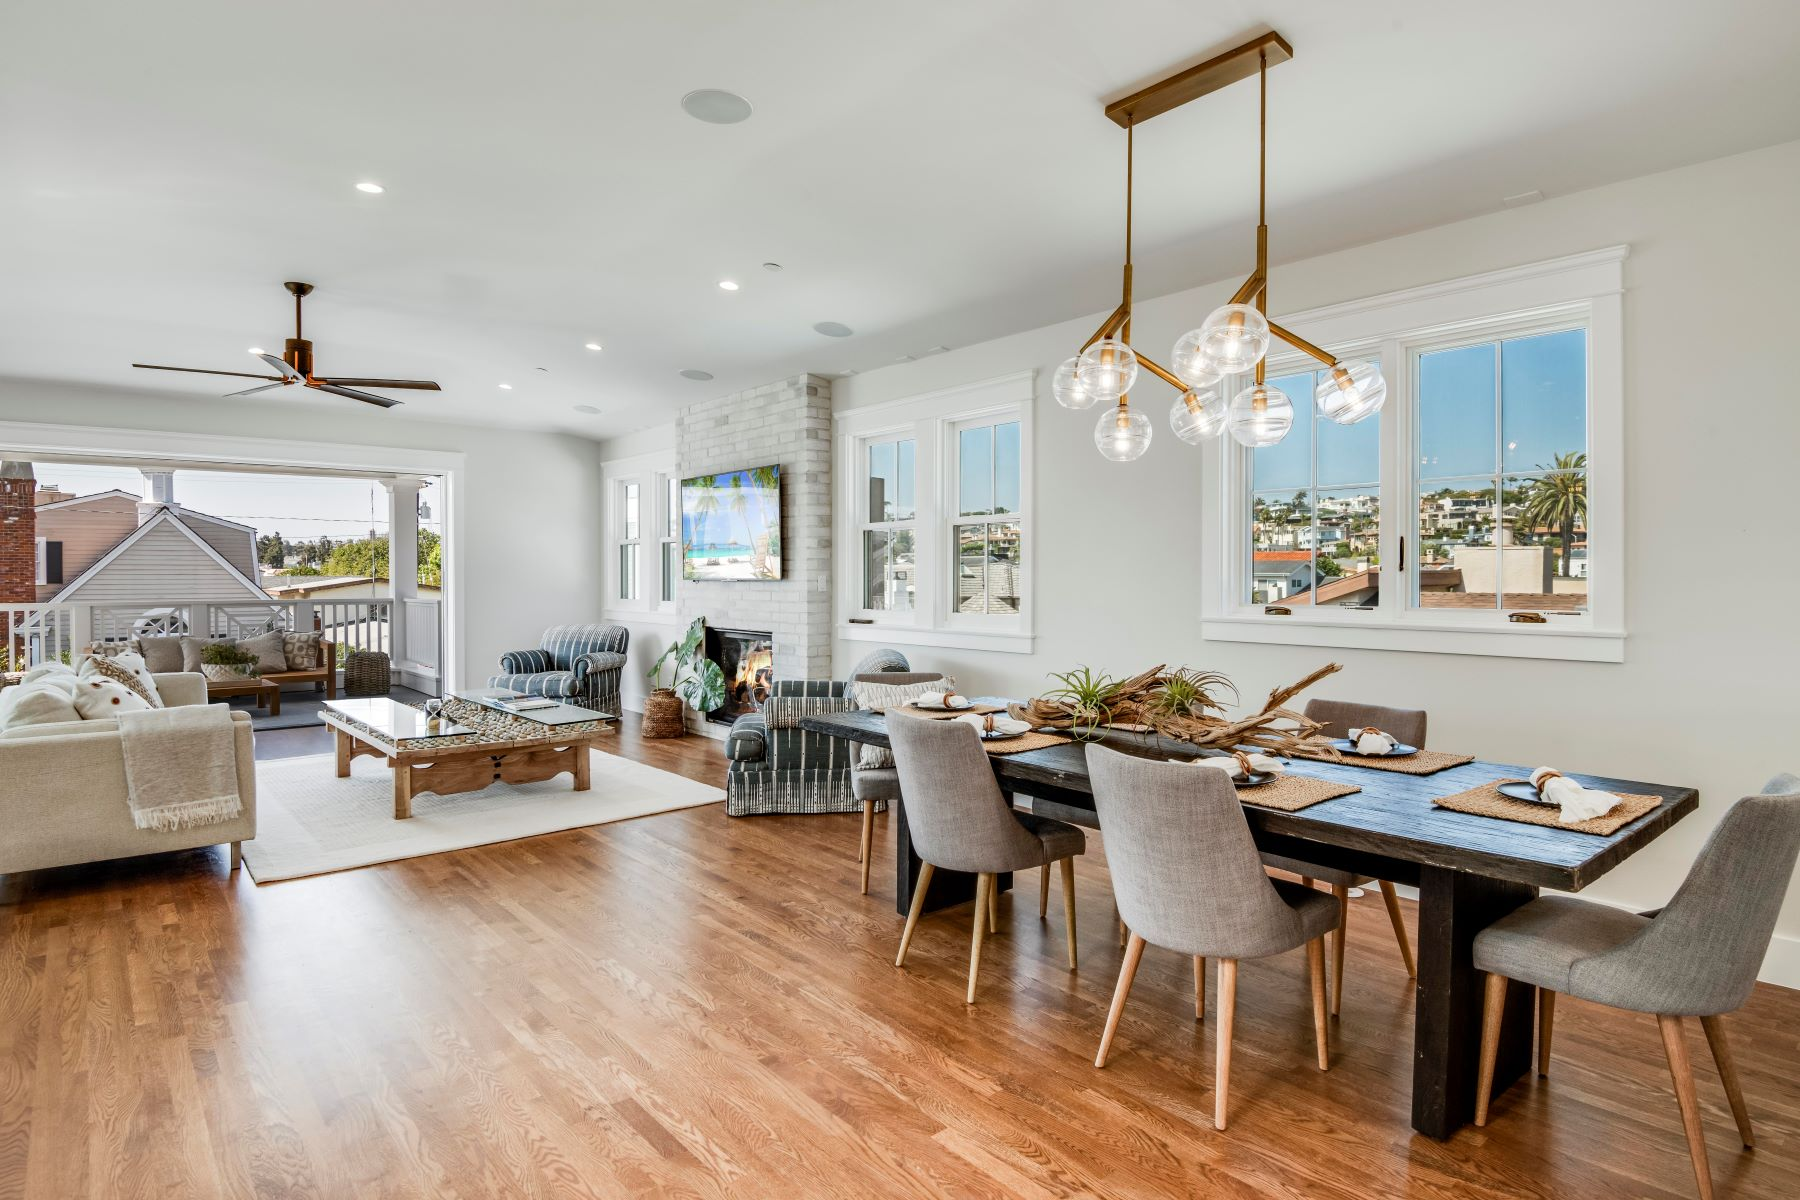 Single Family Homes for Sale at 424 1st Street, Manhattan Beach, CA 90266 424 1st Street Manhattan Beach, California 90266 United States